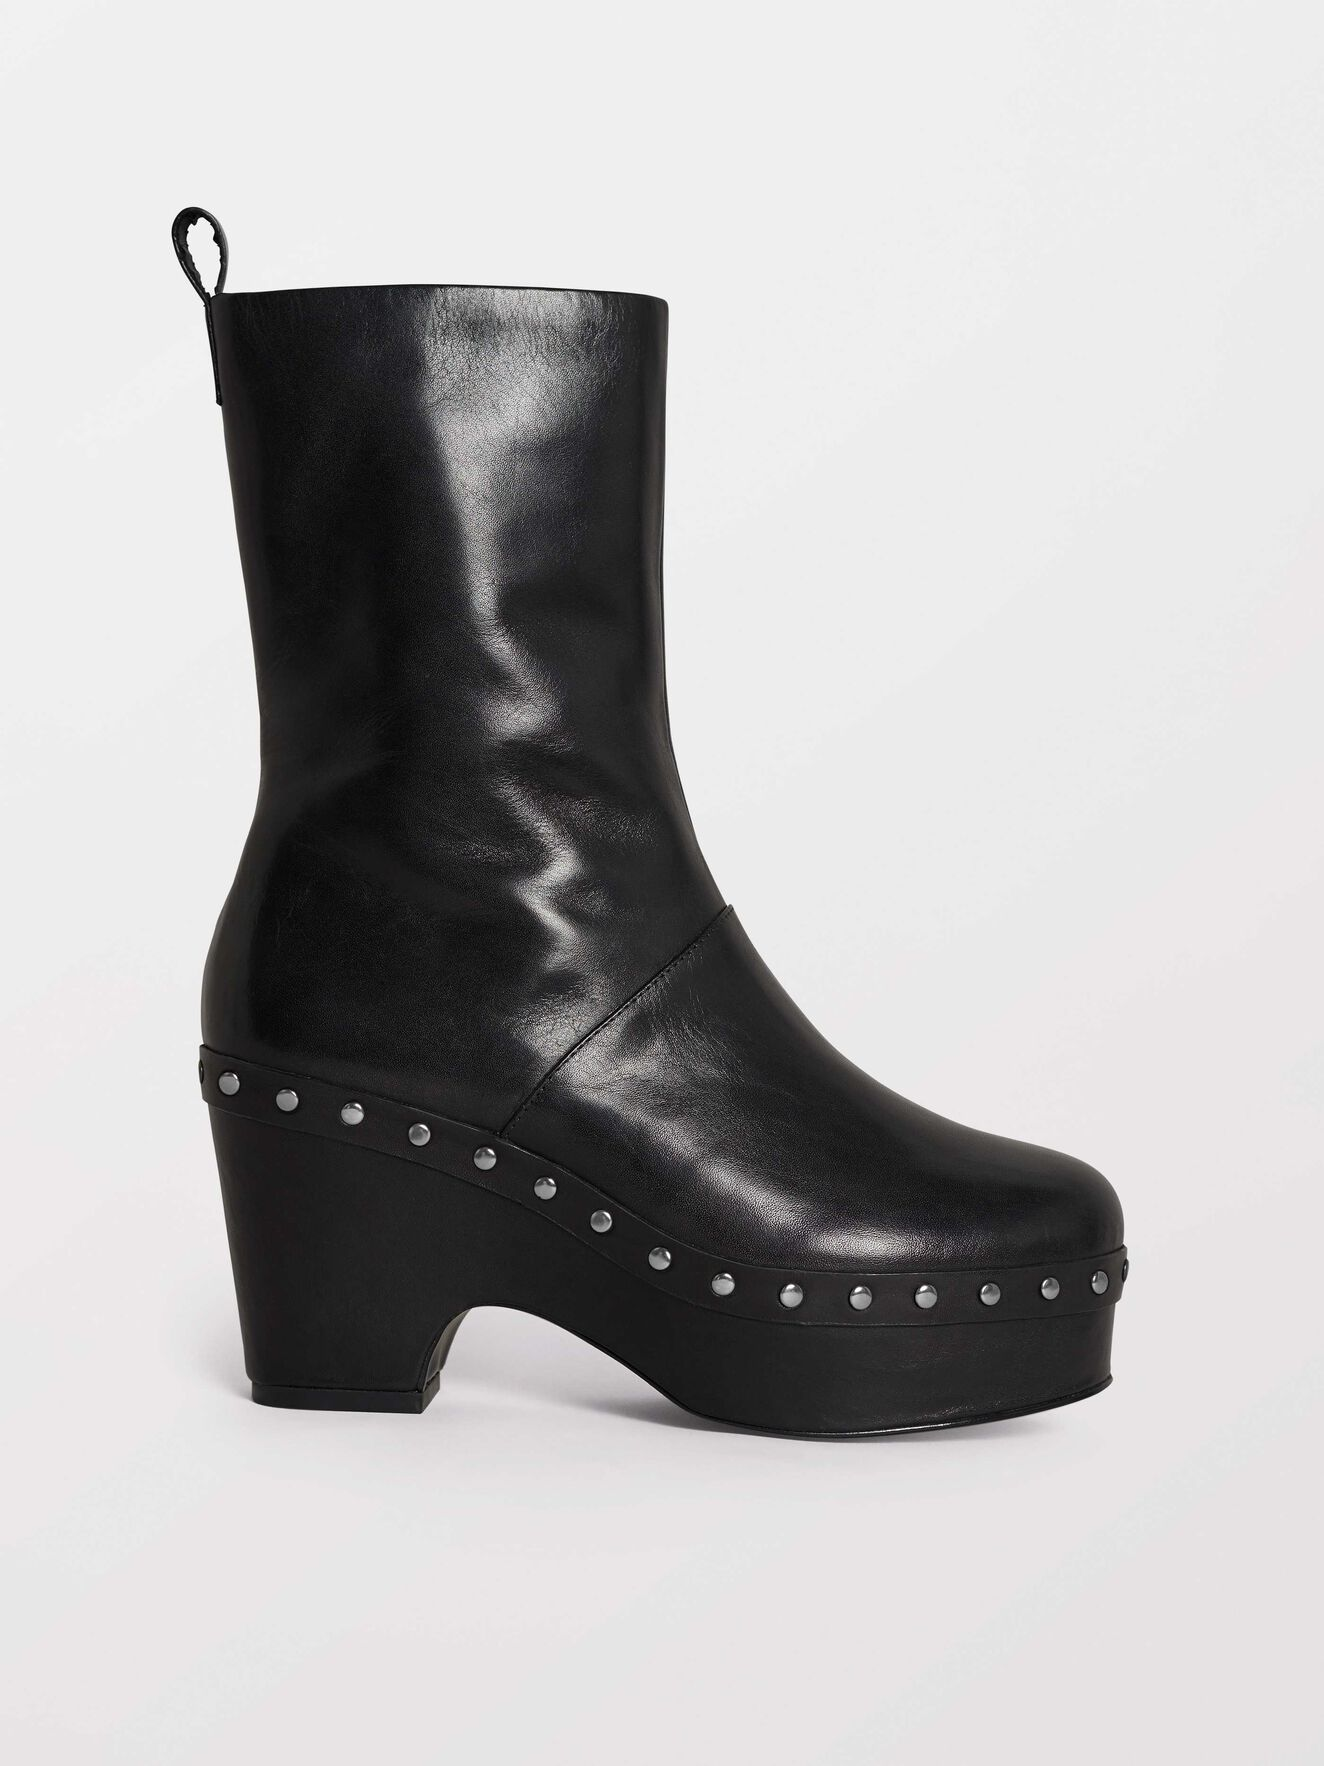 Botan Stiefel in Black from Tiger of Sweden